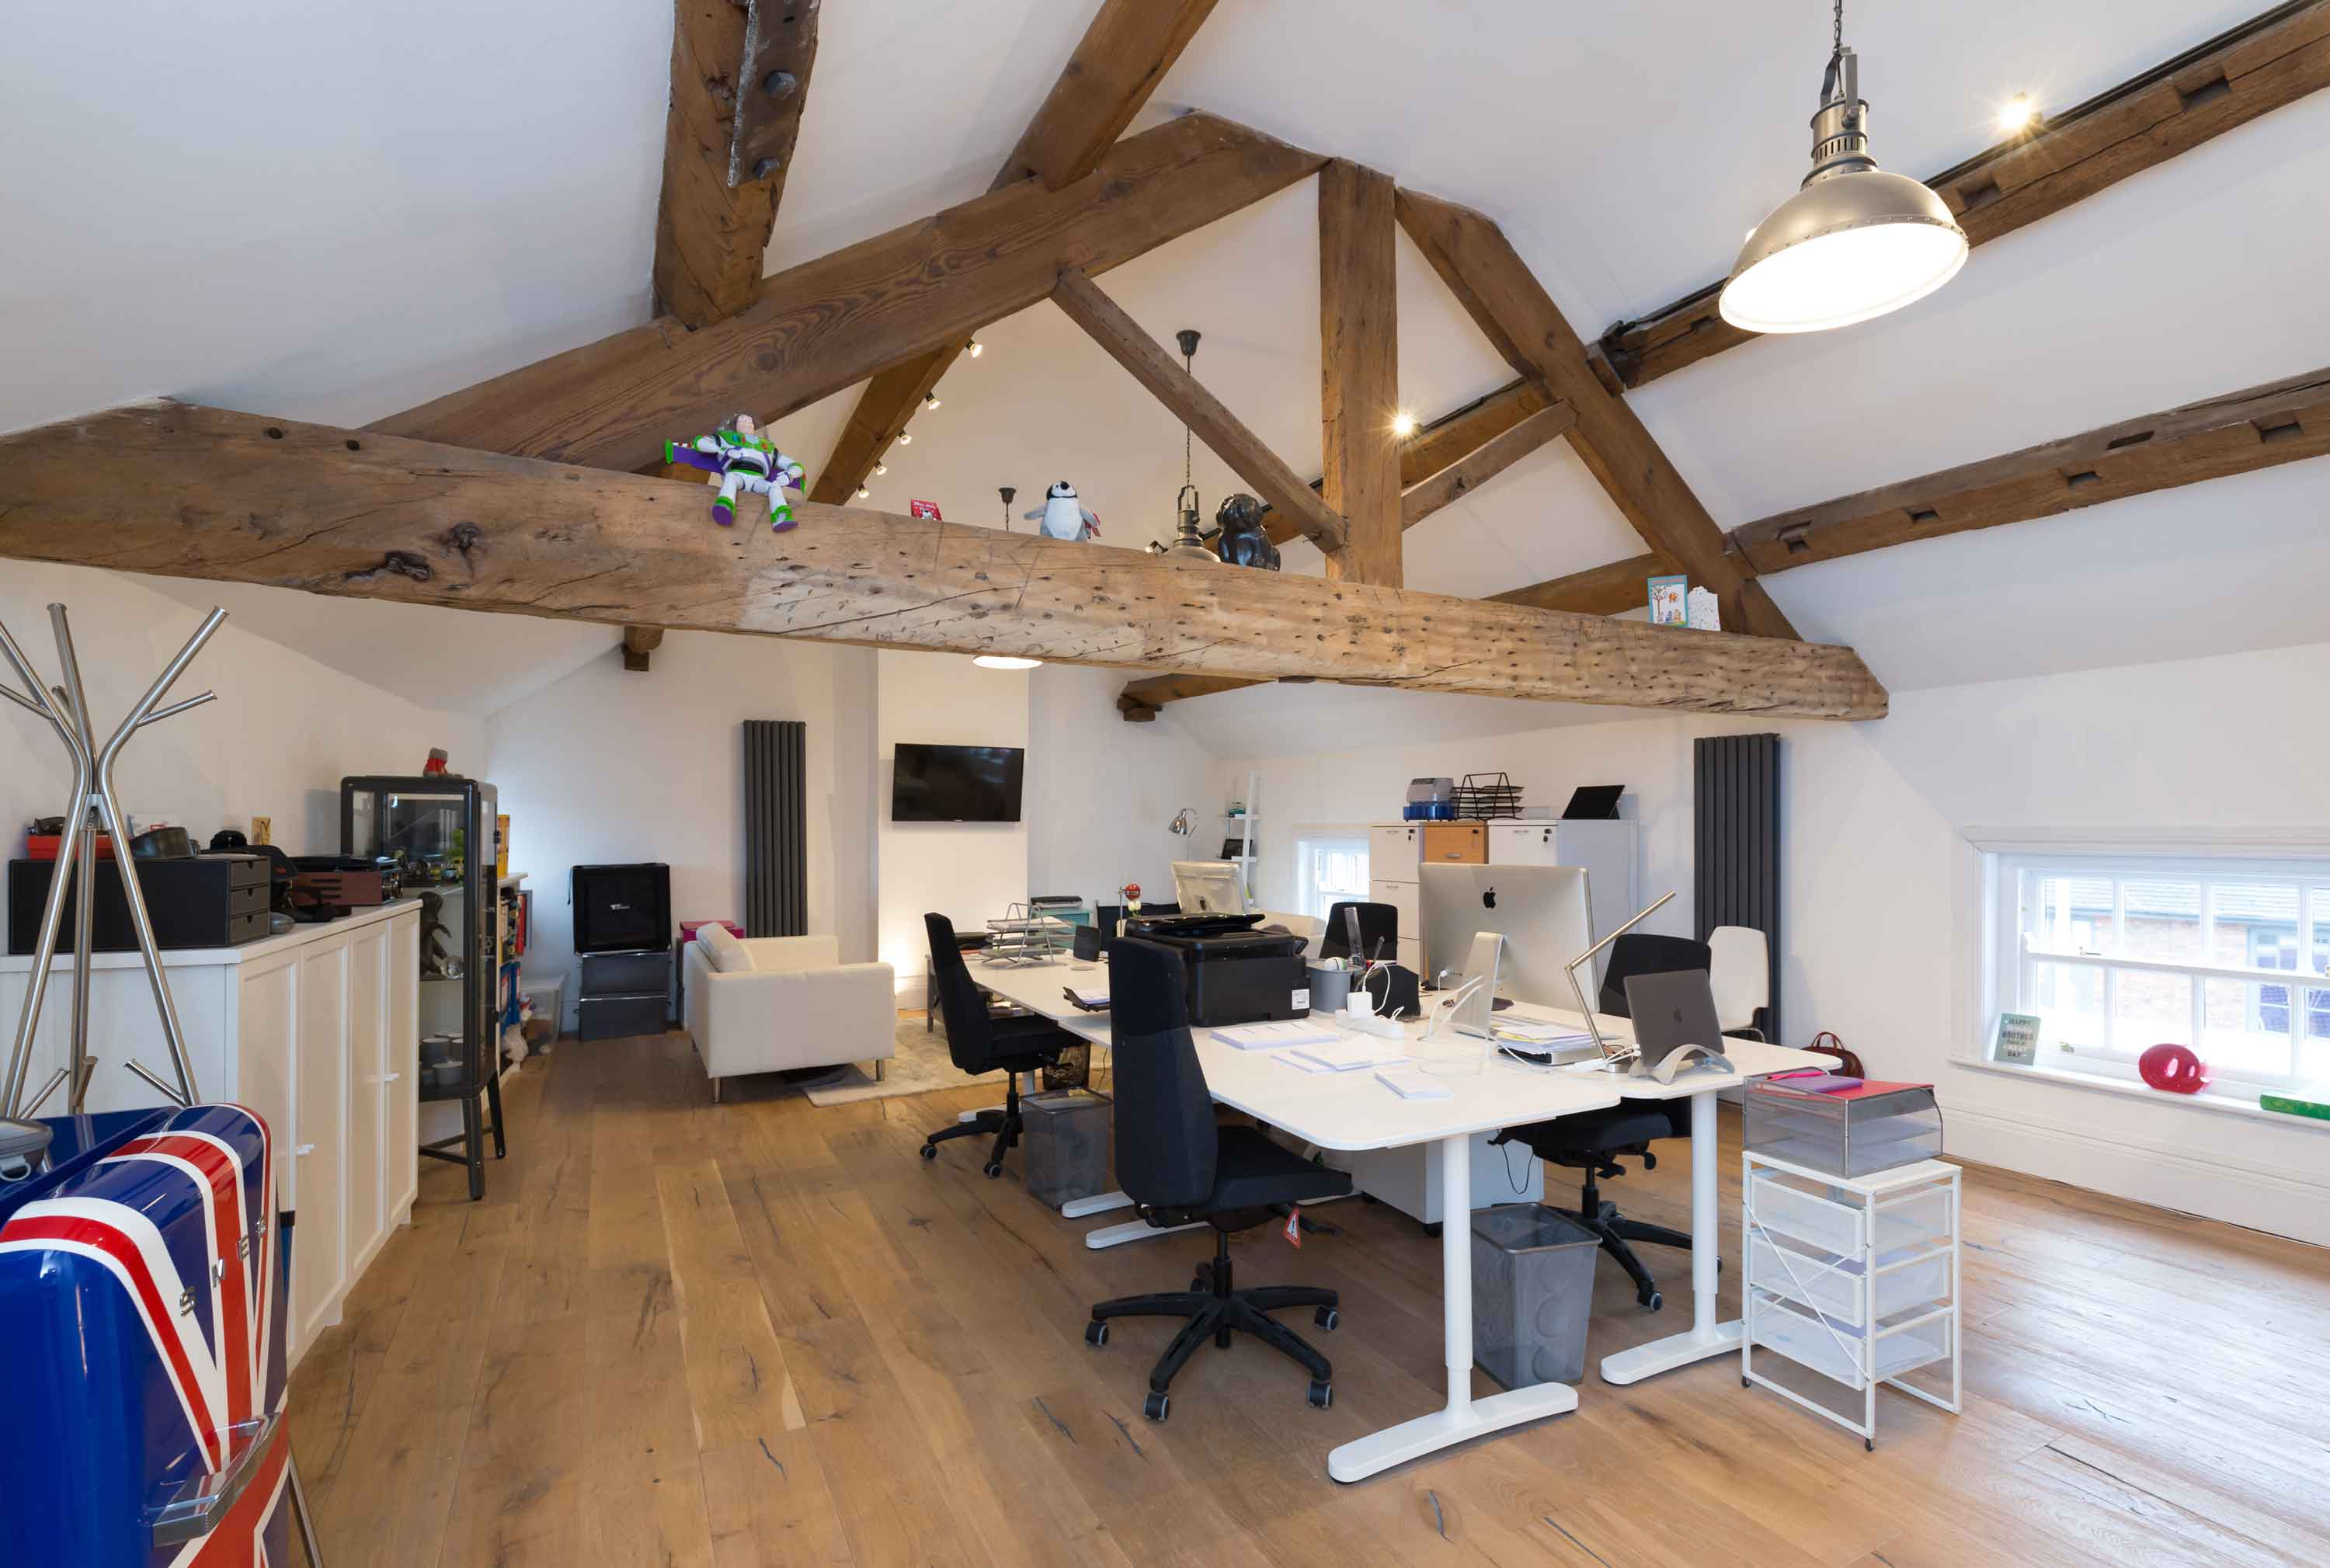 conservation oak beams and truss office space tables computers